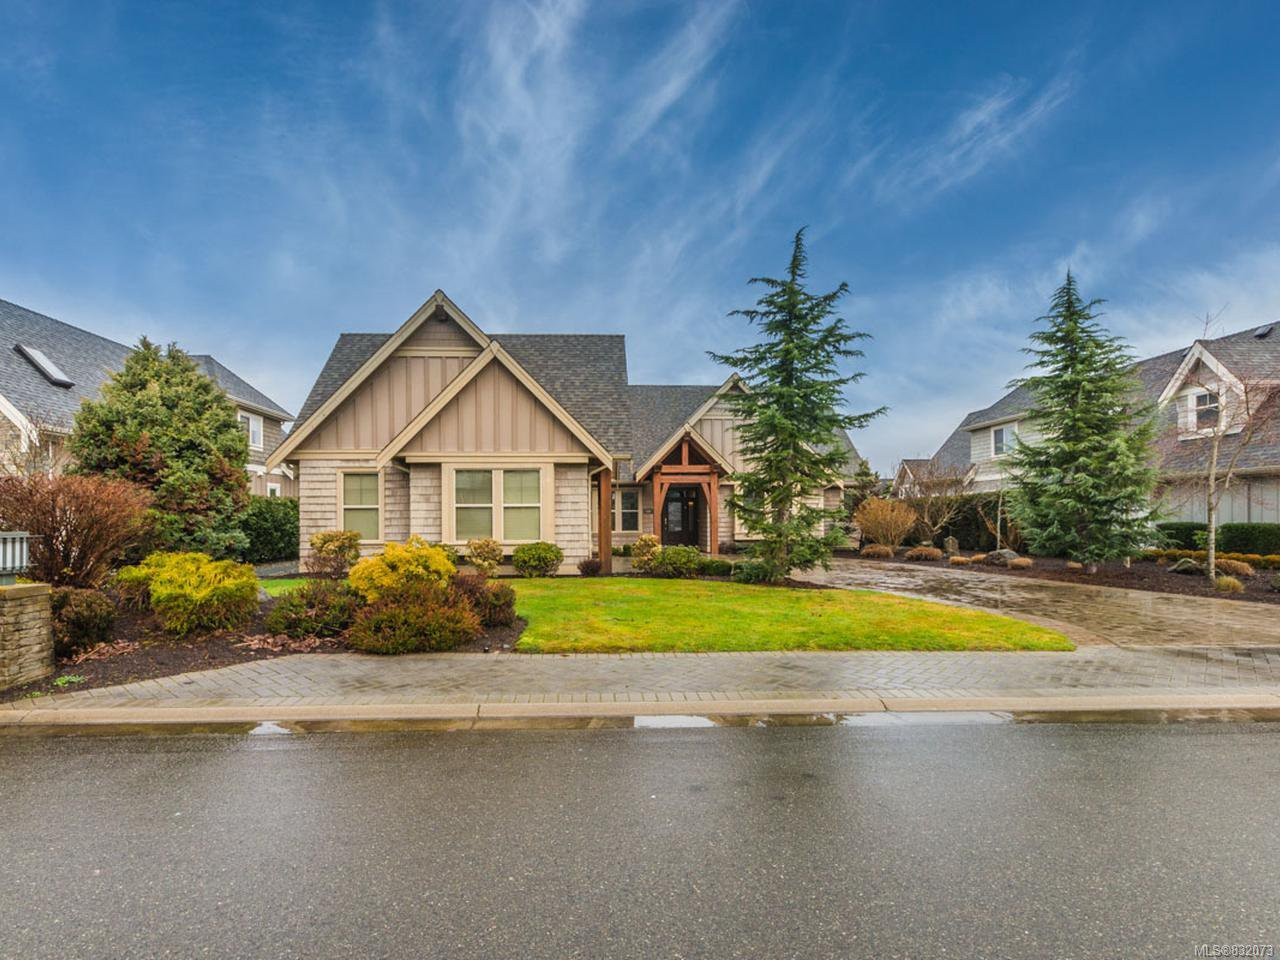 Main Photo: 841 Bluffs Dr in QUALICUM BEACH: PQ Qualicum Beach House for sale (Parksville/Qualicum)  : MLS®# 832073